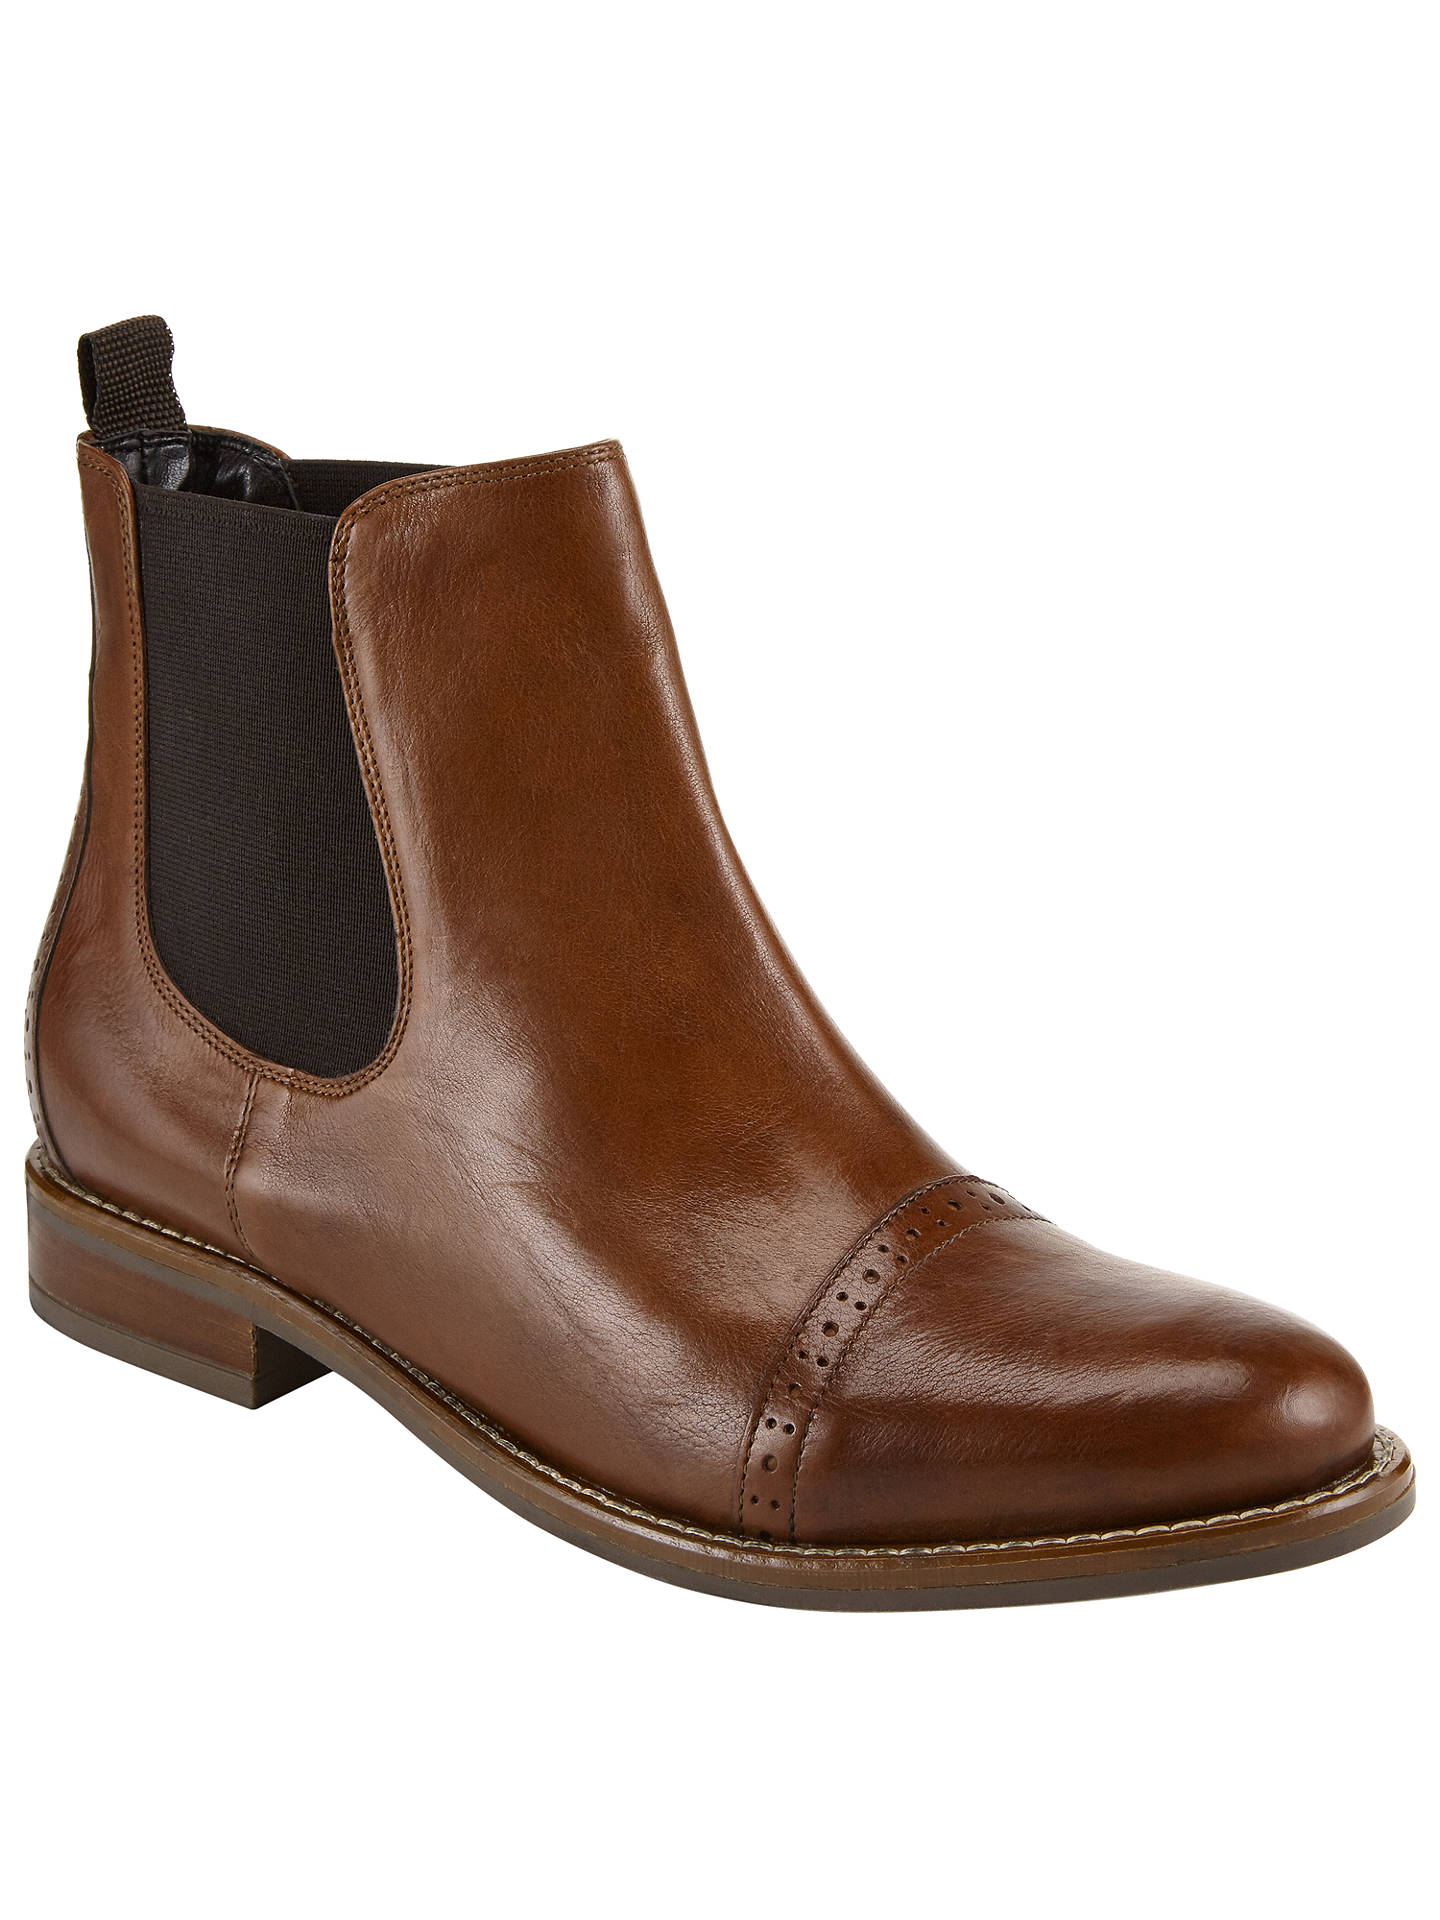 5e377fa59 Buy John Lewis Orna Ankle Chelsea Boots, Brown, 3 Online at johnlewis.com  ...